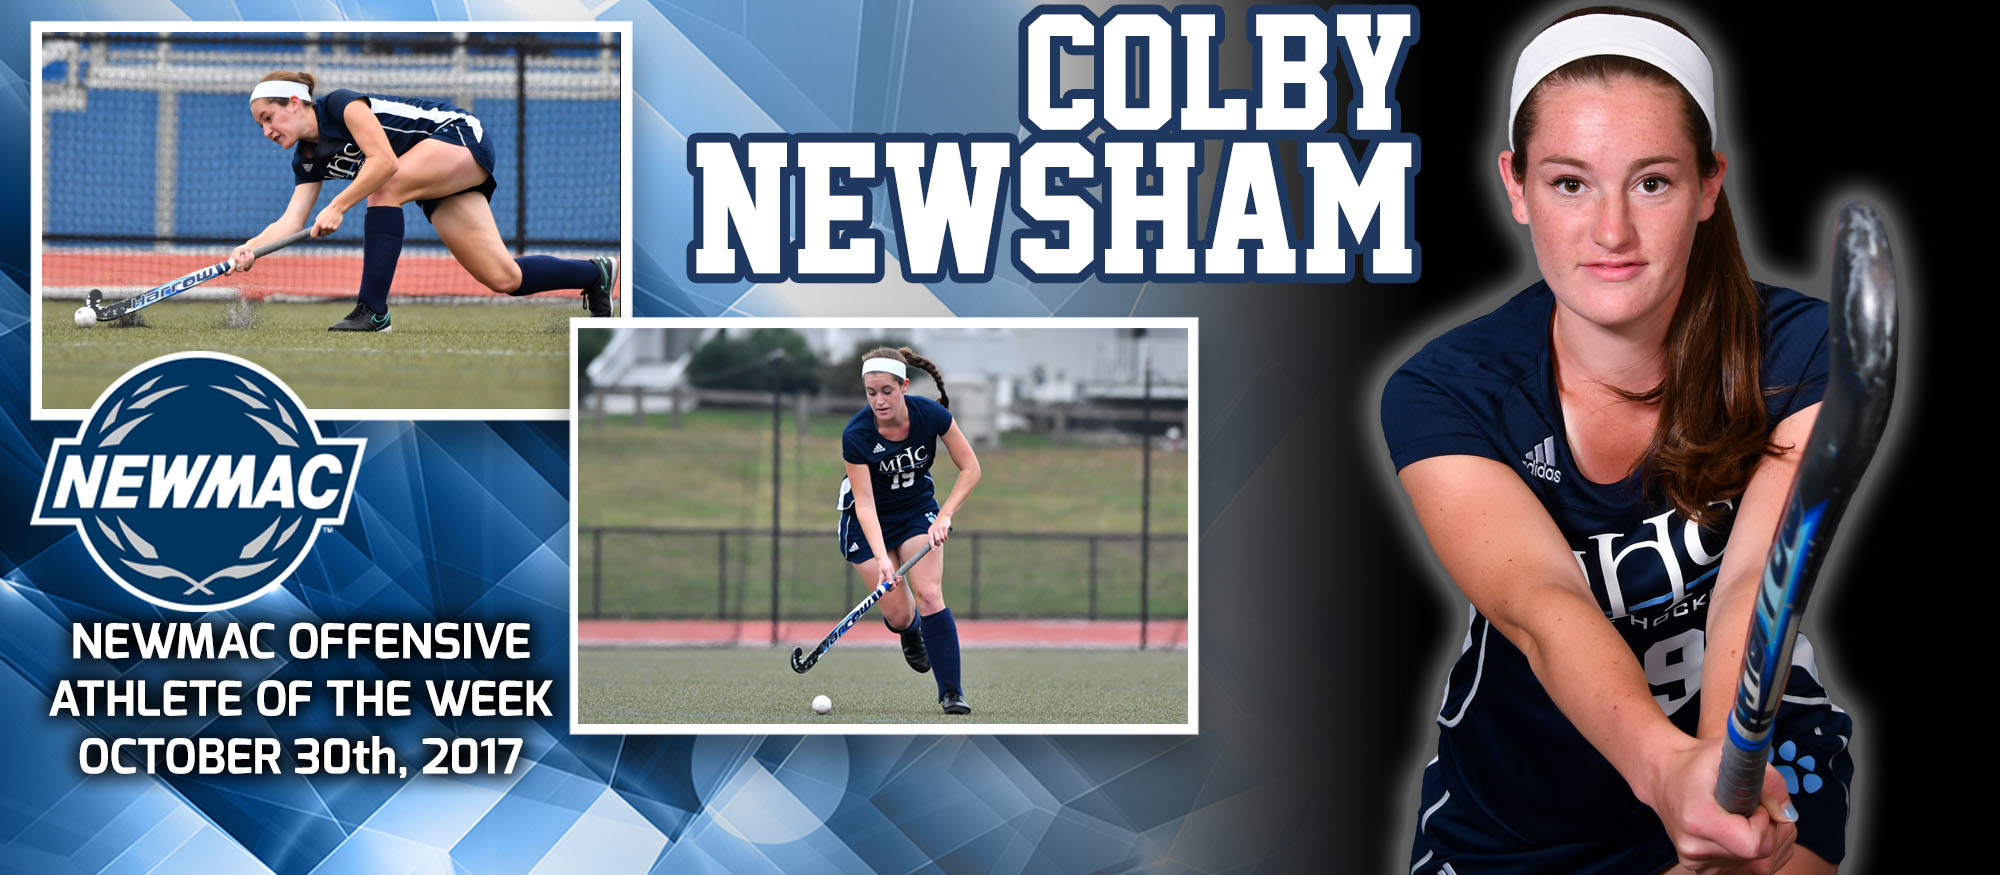 Photo of Colby Newsham who was named the NEWMAC Offensive Athlete of the Week for October 30th